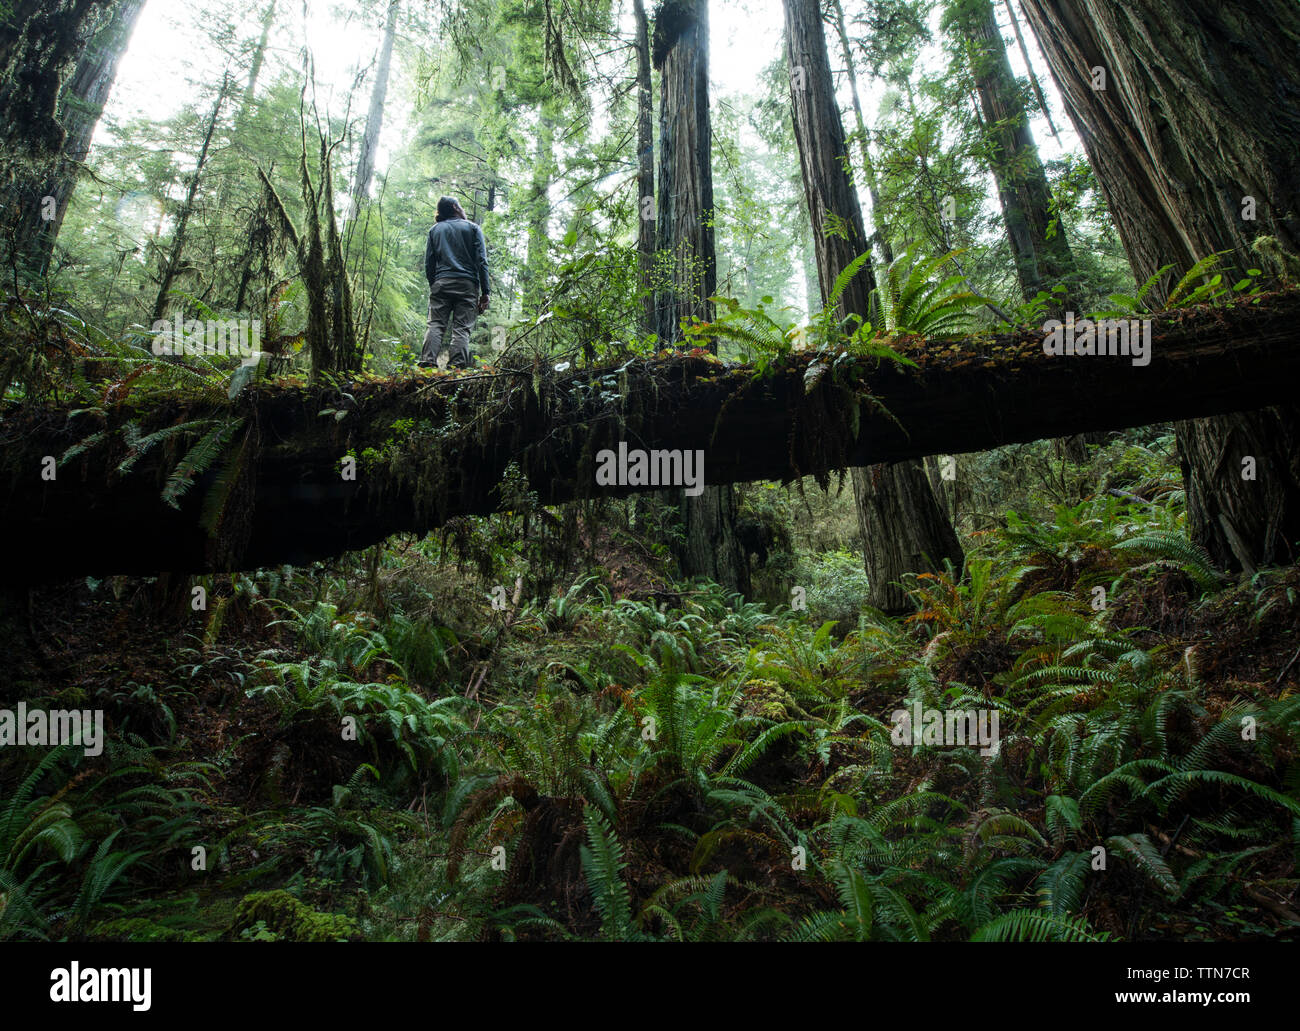 Low angle view of man standing on fallen tree trunk at Jedediah Smith Redwoods State Park - Stock Image